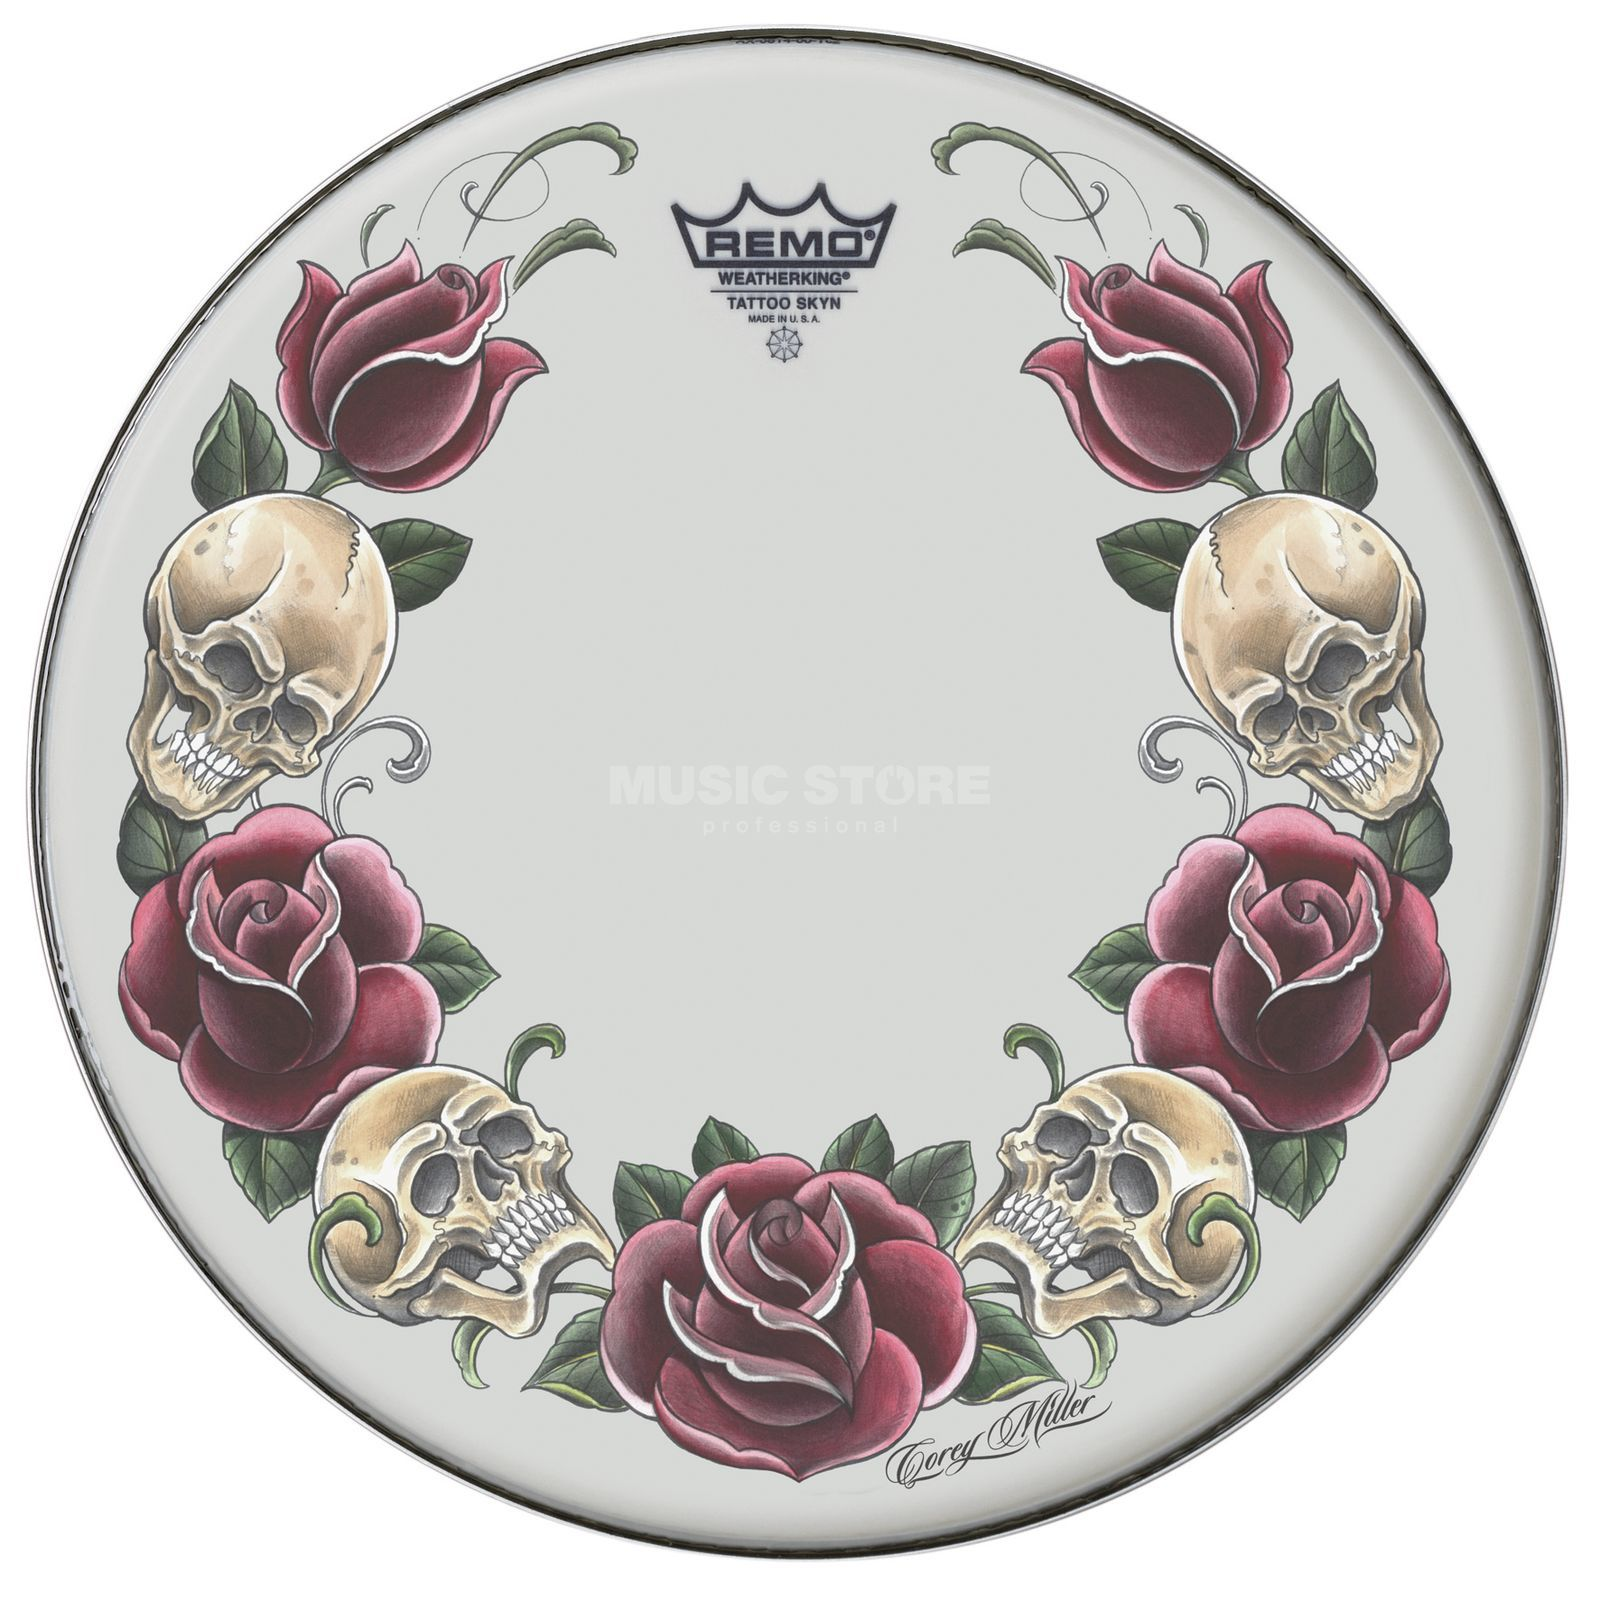 "Remo Tattoo Skyn 14"", Rock and Roses Изображение товара"